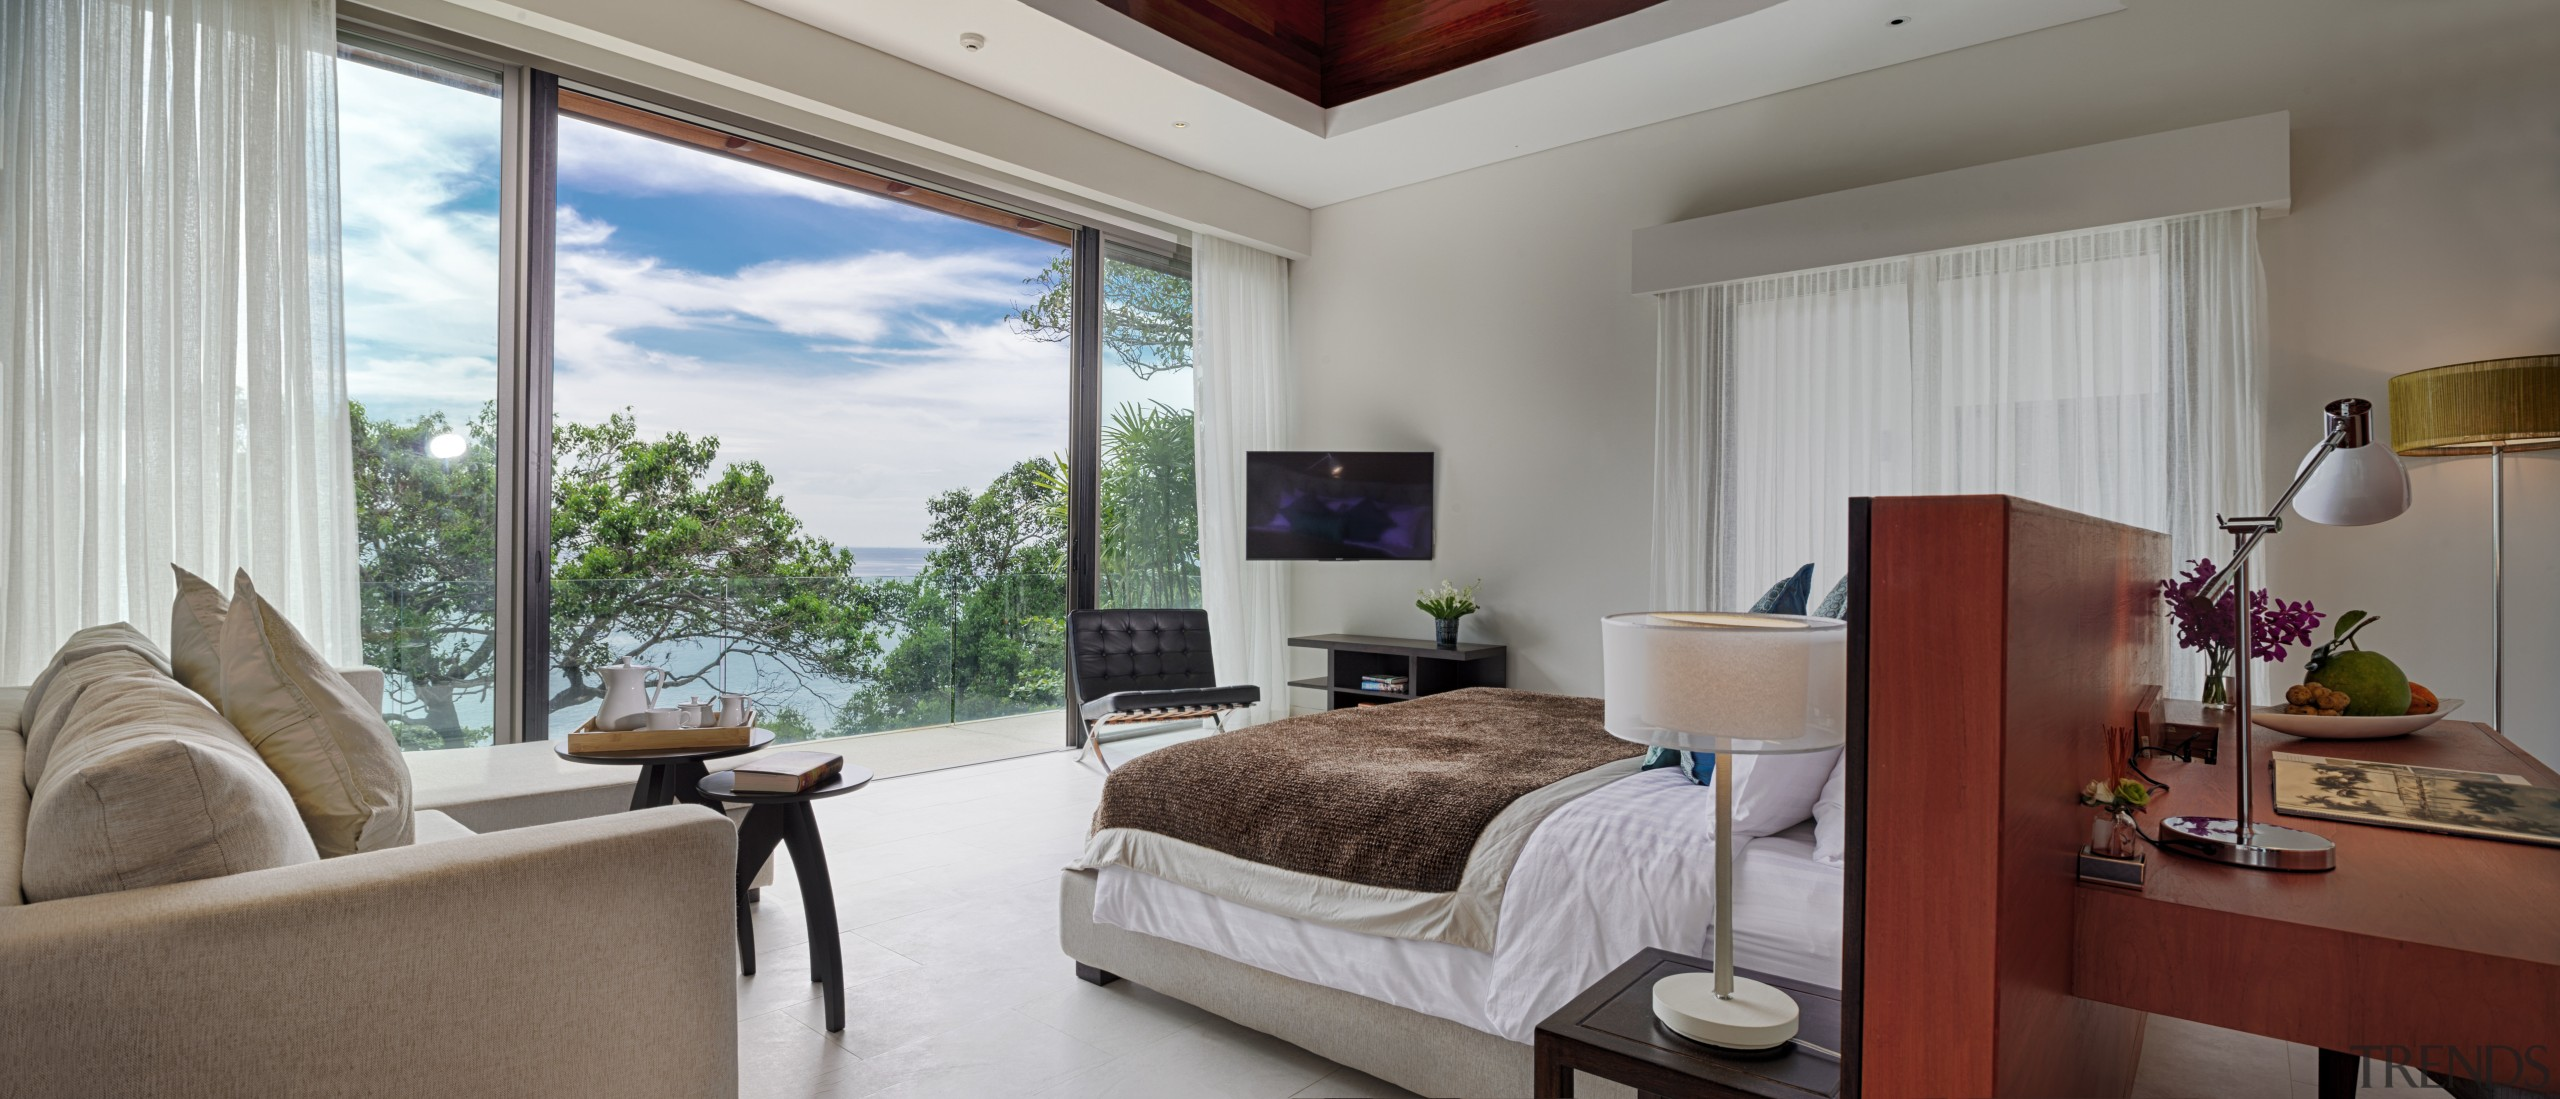 This bedroom design follows a hotel plan, with bedroom, ceiling, estate, interior design, living room, property, real estate, room, suite, window, gray